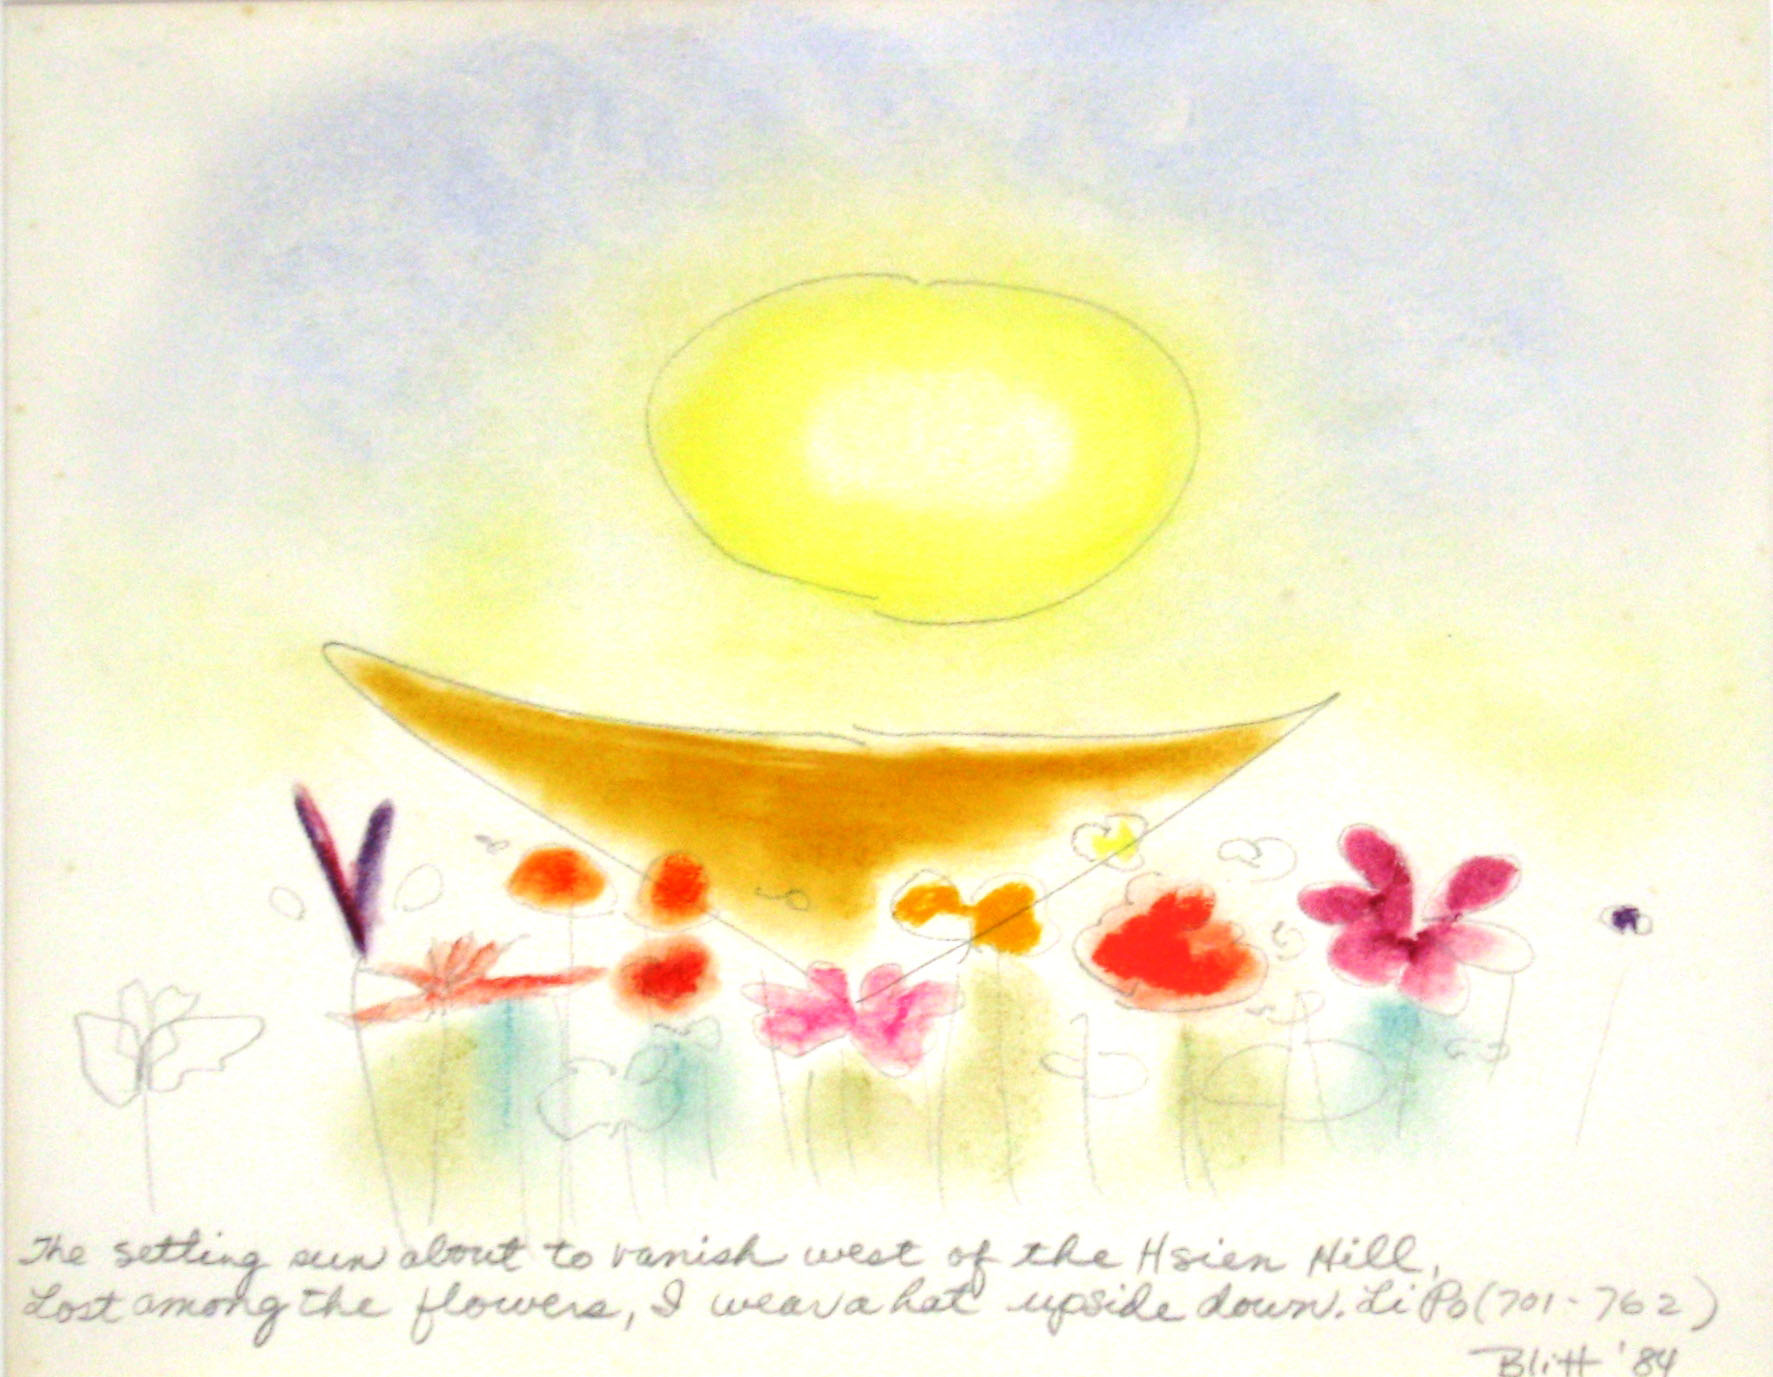 Li Po #8  1984, pastel on paper, 16x20in   The setting sun about to vanish west of the Hsien Hill. Lost among the flowers, I wear a hat upside down.